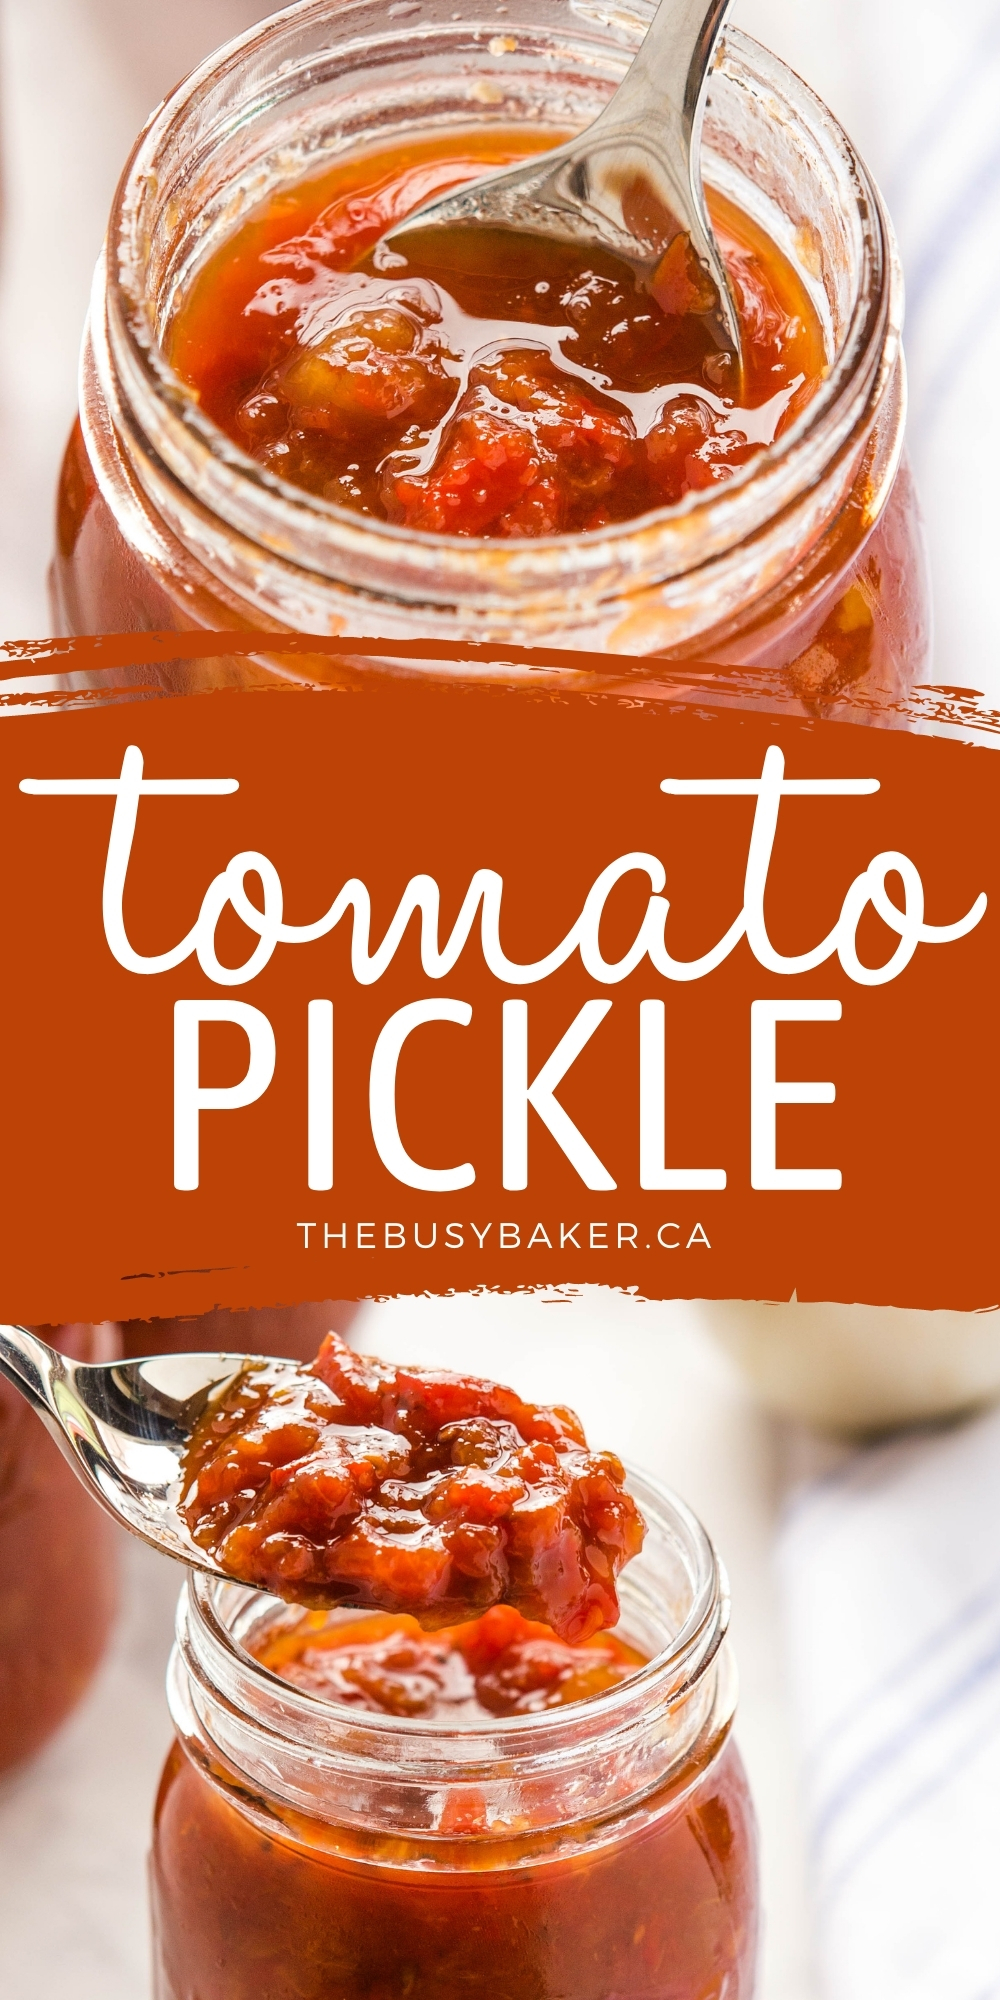 This Tomato Pickle is a classic sweet fruit relish or chutney made from fresh tomatoes, onions, bell peppers, peaches and pears - the perfect condiment for your favourite savoury dishes! Recipe from thebusybaker.ca! #chutney #tomatopickle #fruitrelish #relish #canning #homesteading #garden #fresh #homemade via @busybakerblog